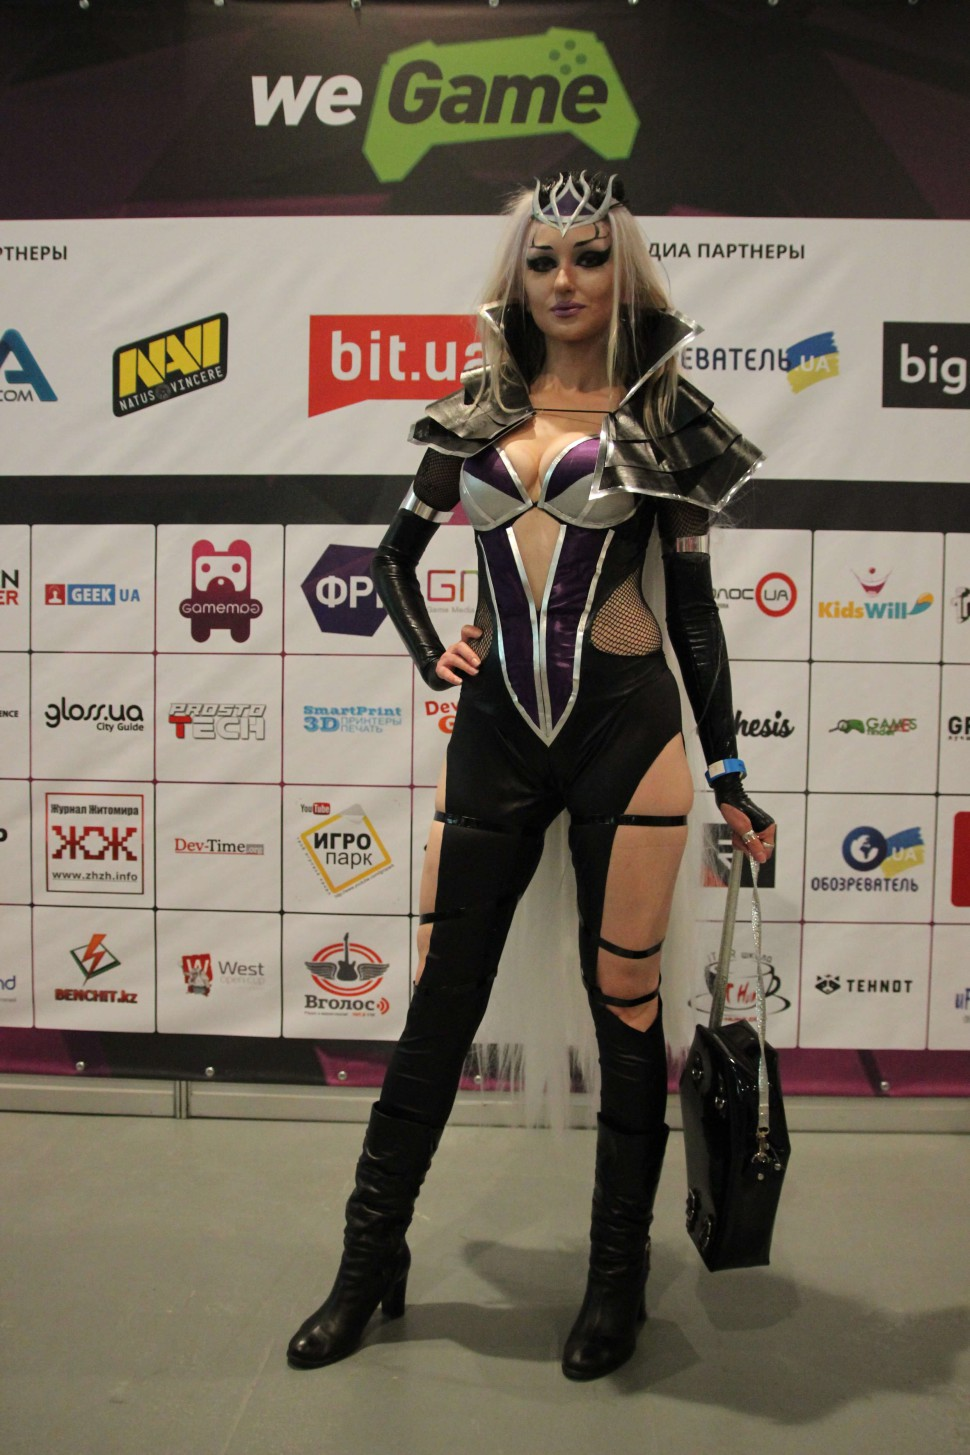 Top 7 cosplayers who attended WEGAME 2.0  - 2